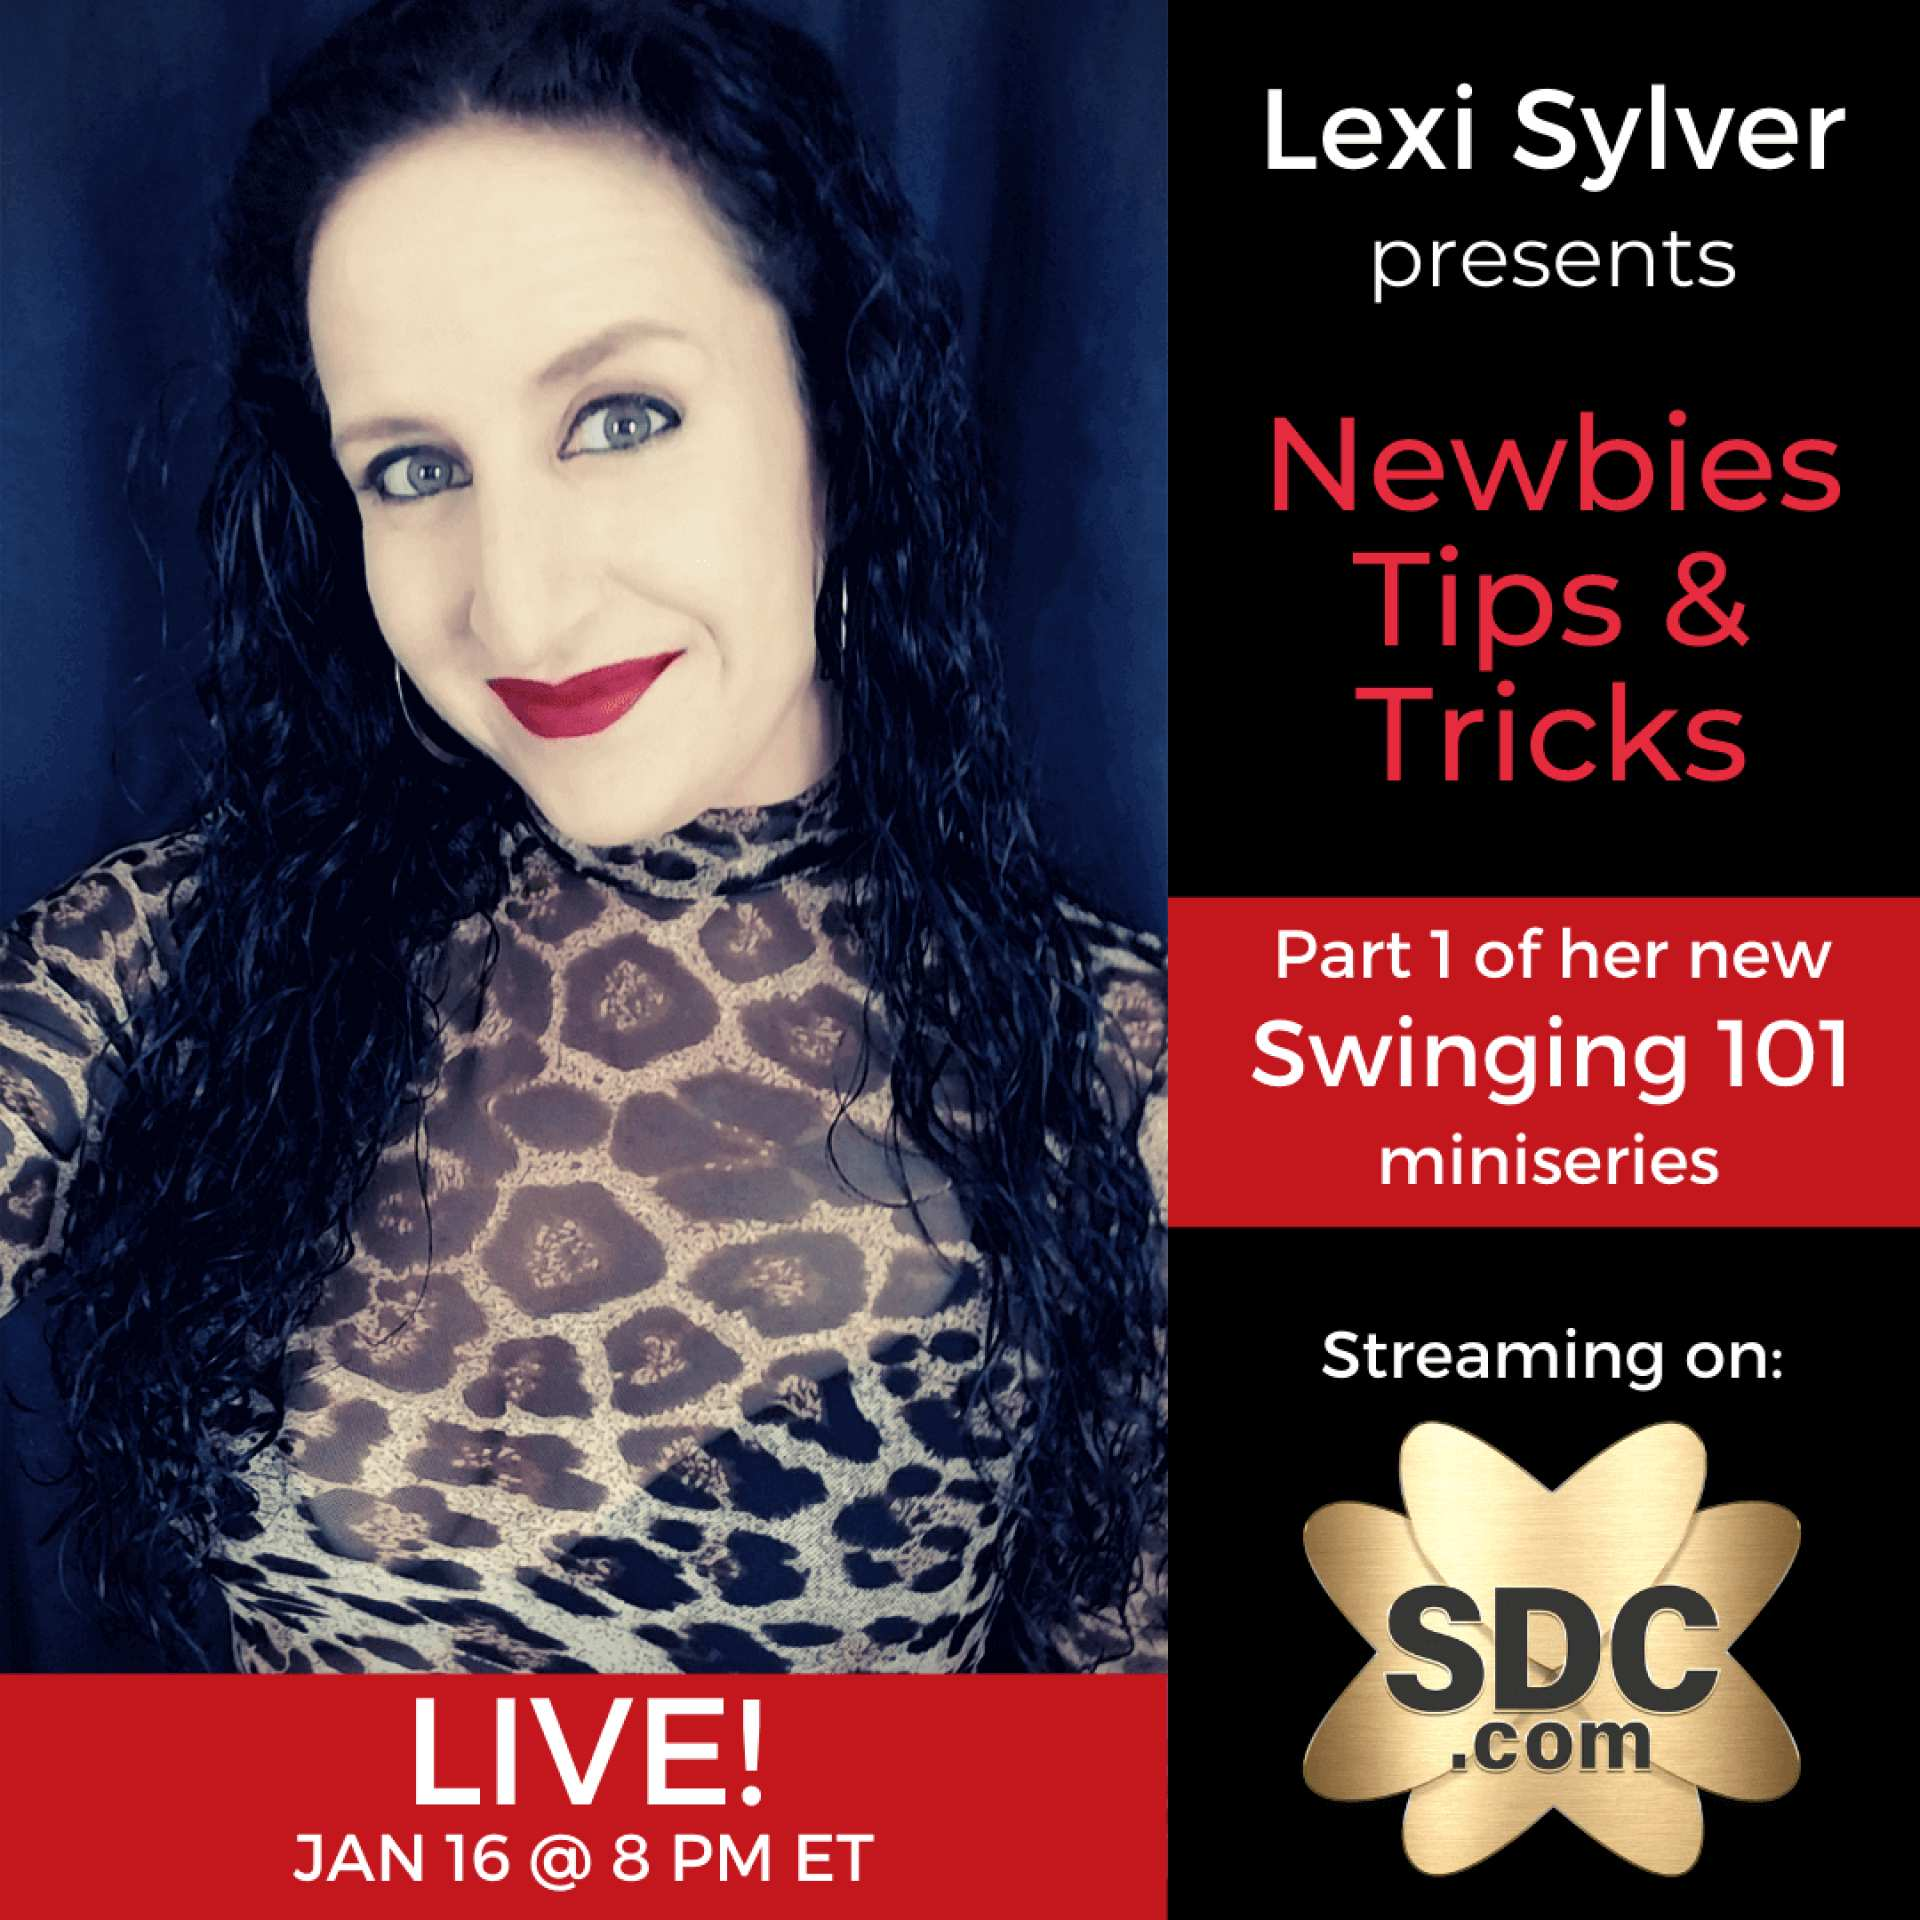 Newbies Tips and Tricks Swinging 101 Lexi Sylver